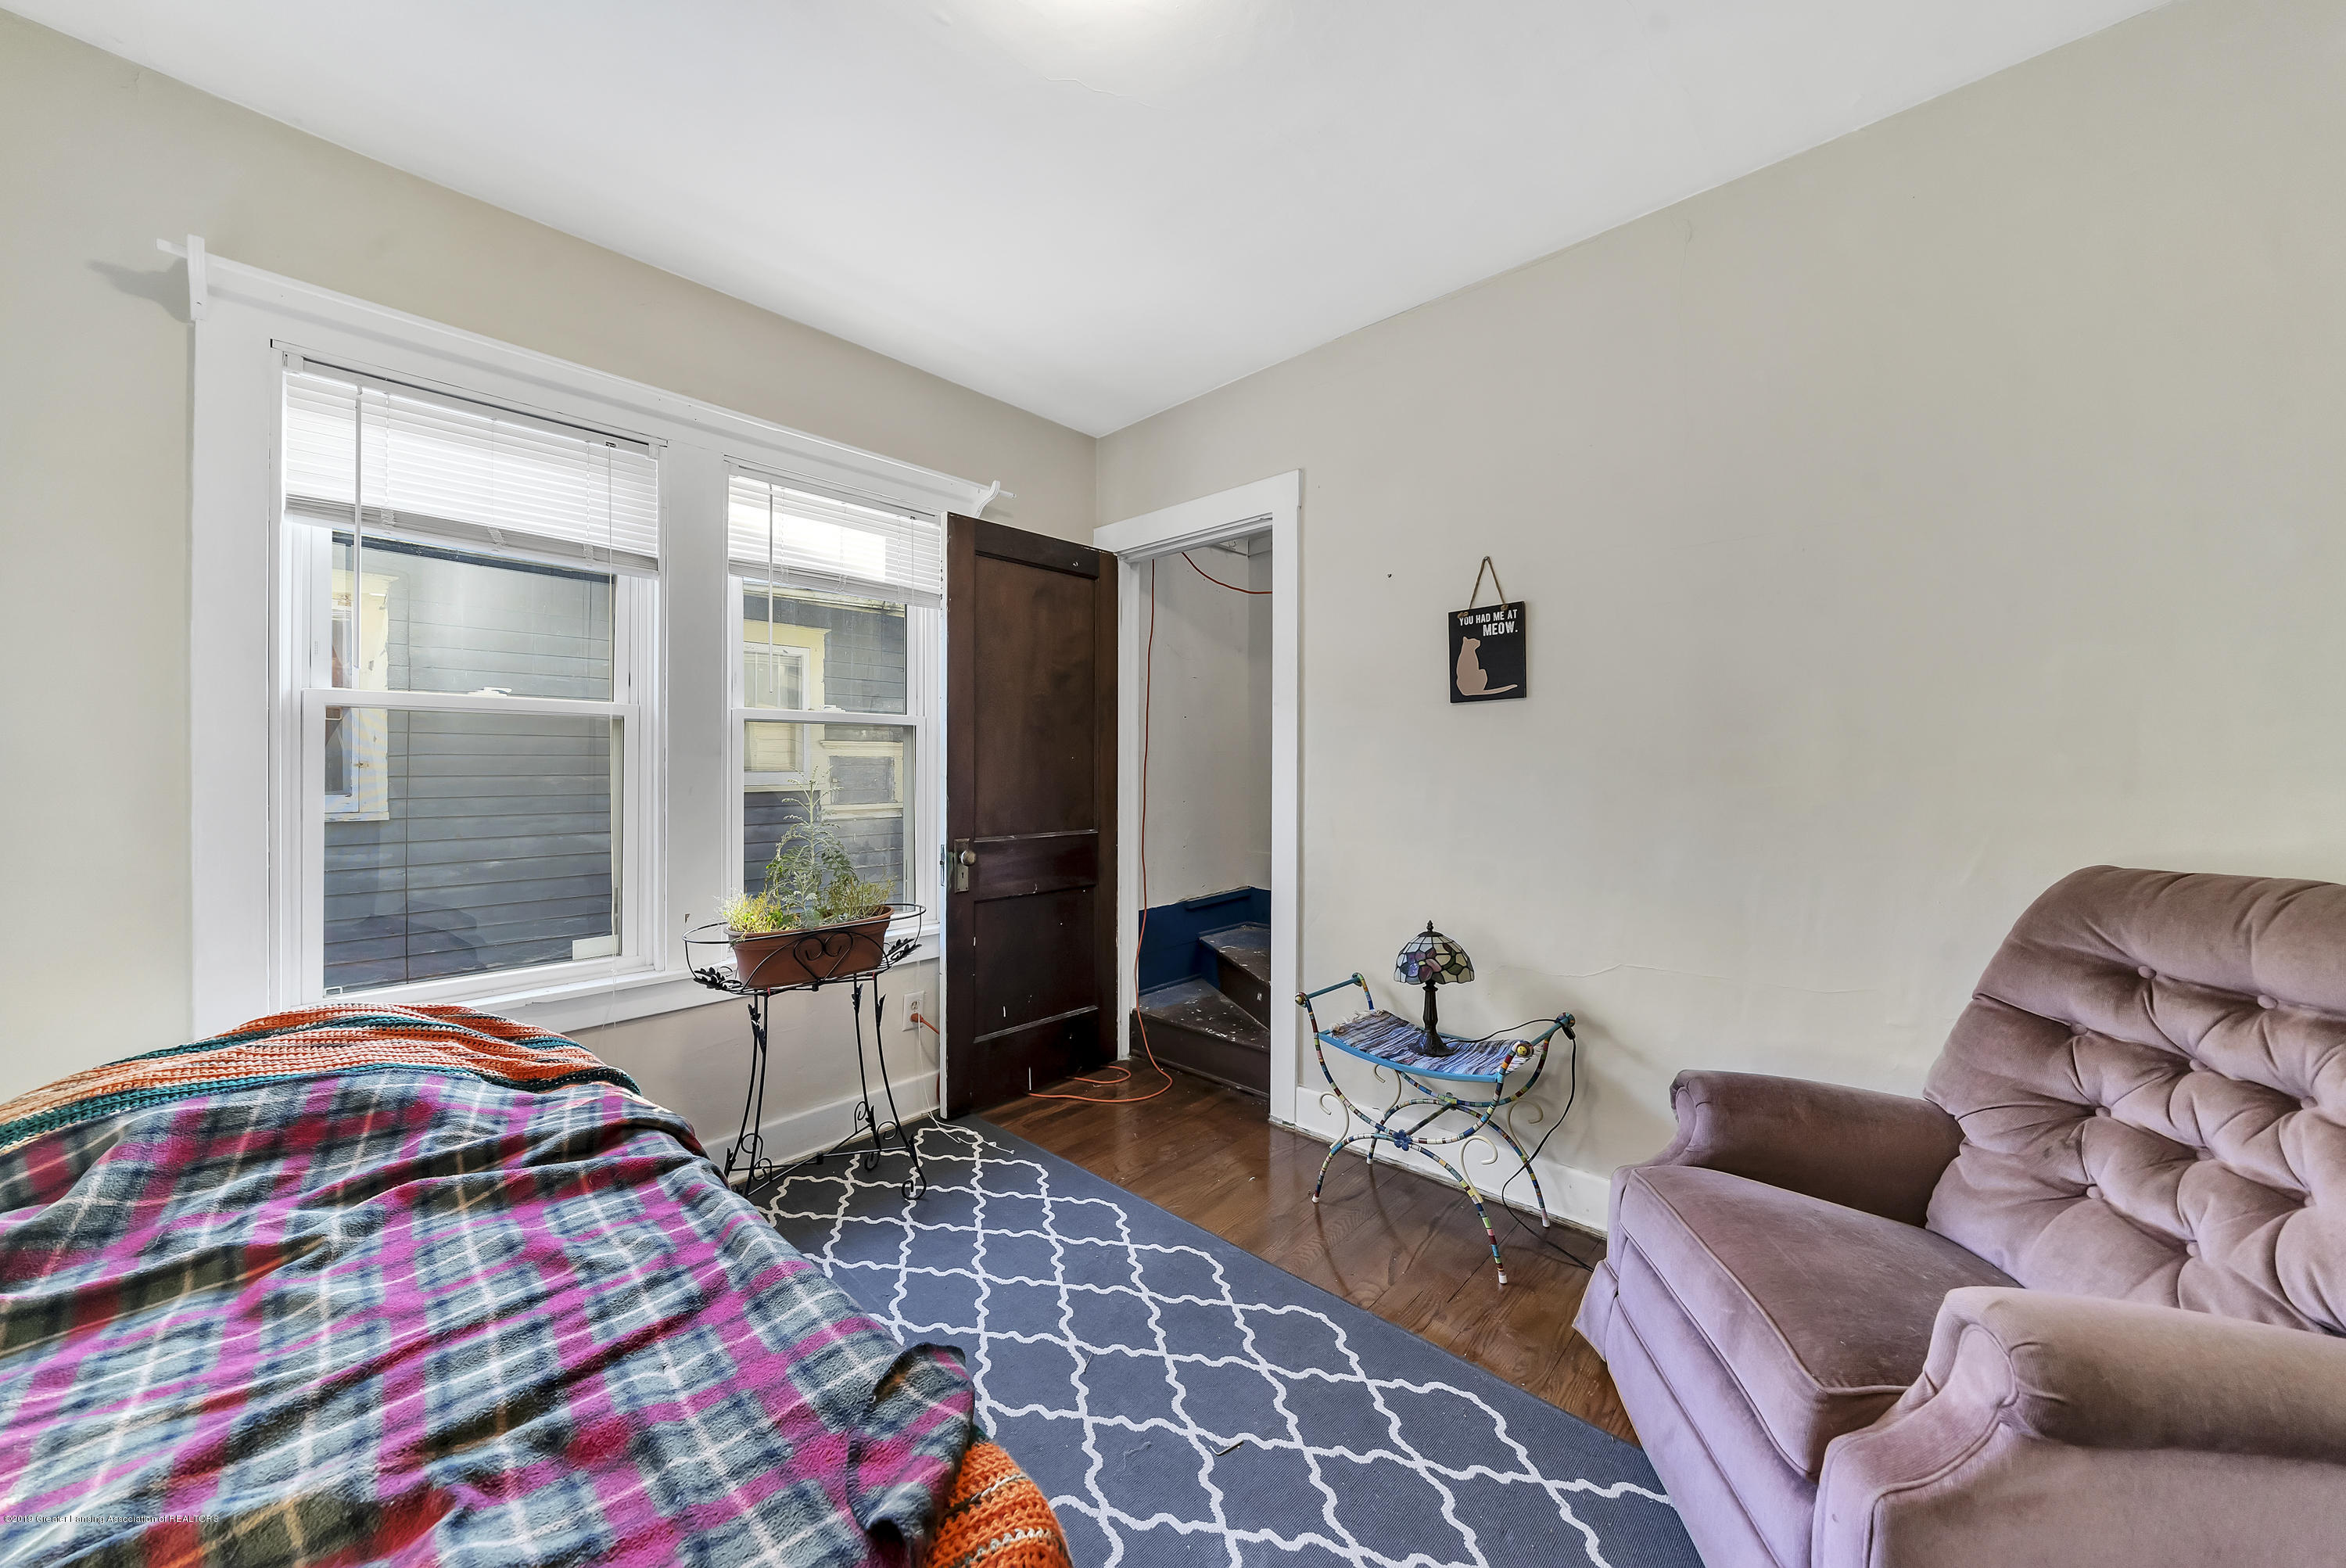 1004 S Holmes St - 1004-S-Holmes-st-WindowStill-Real-Estate - 20